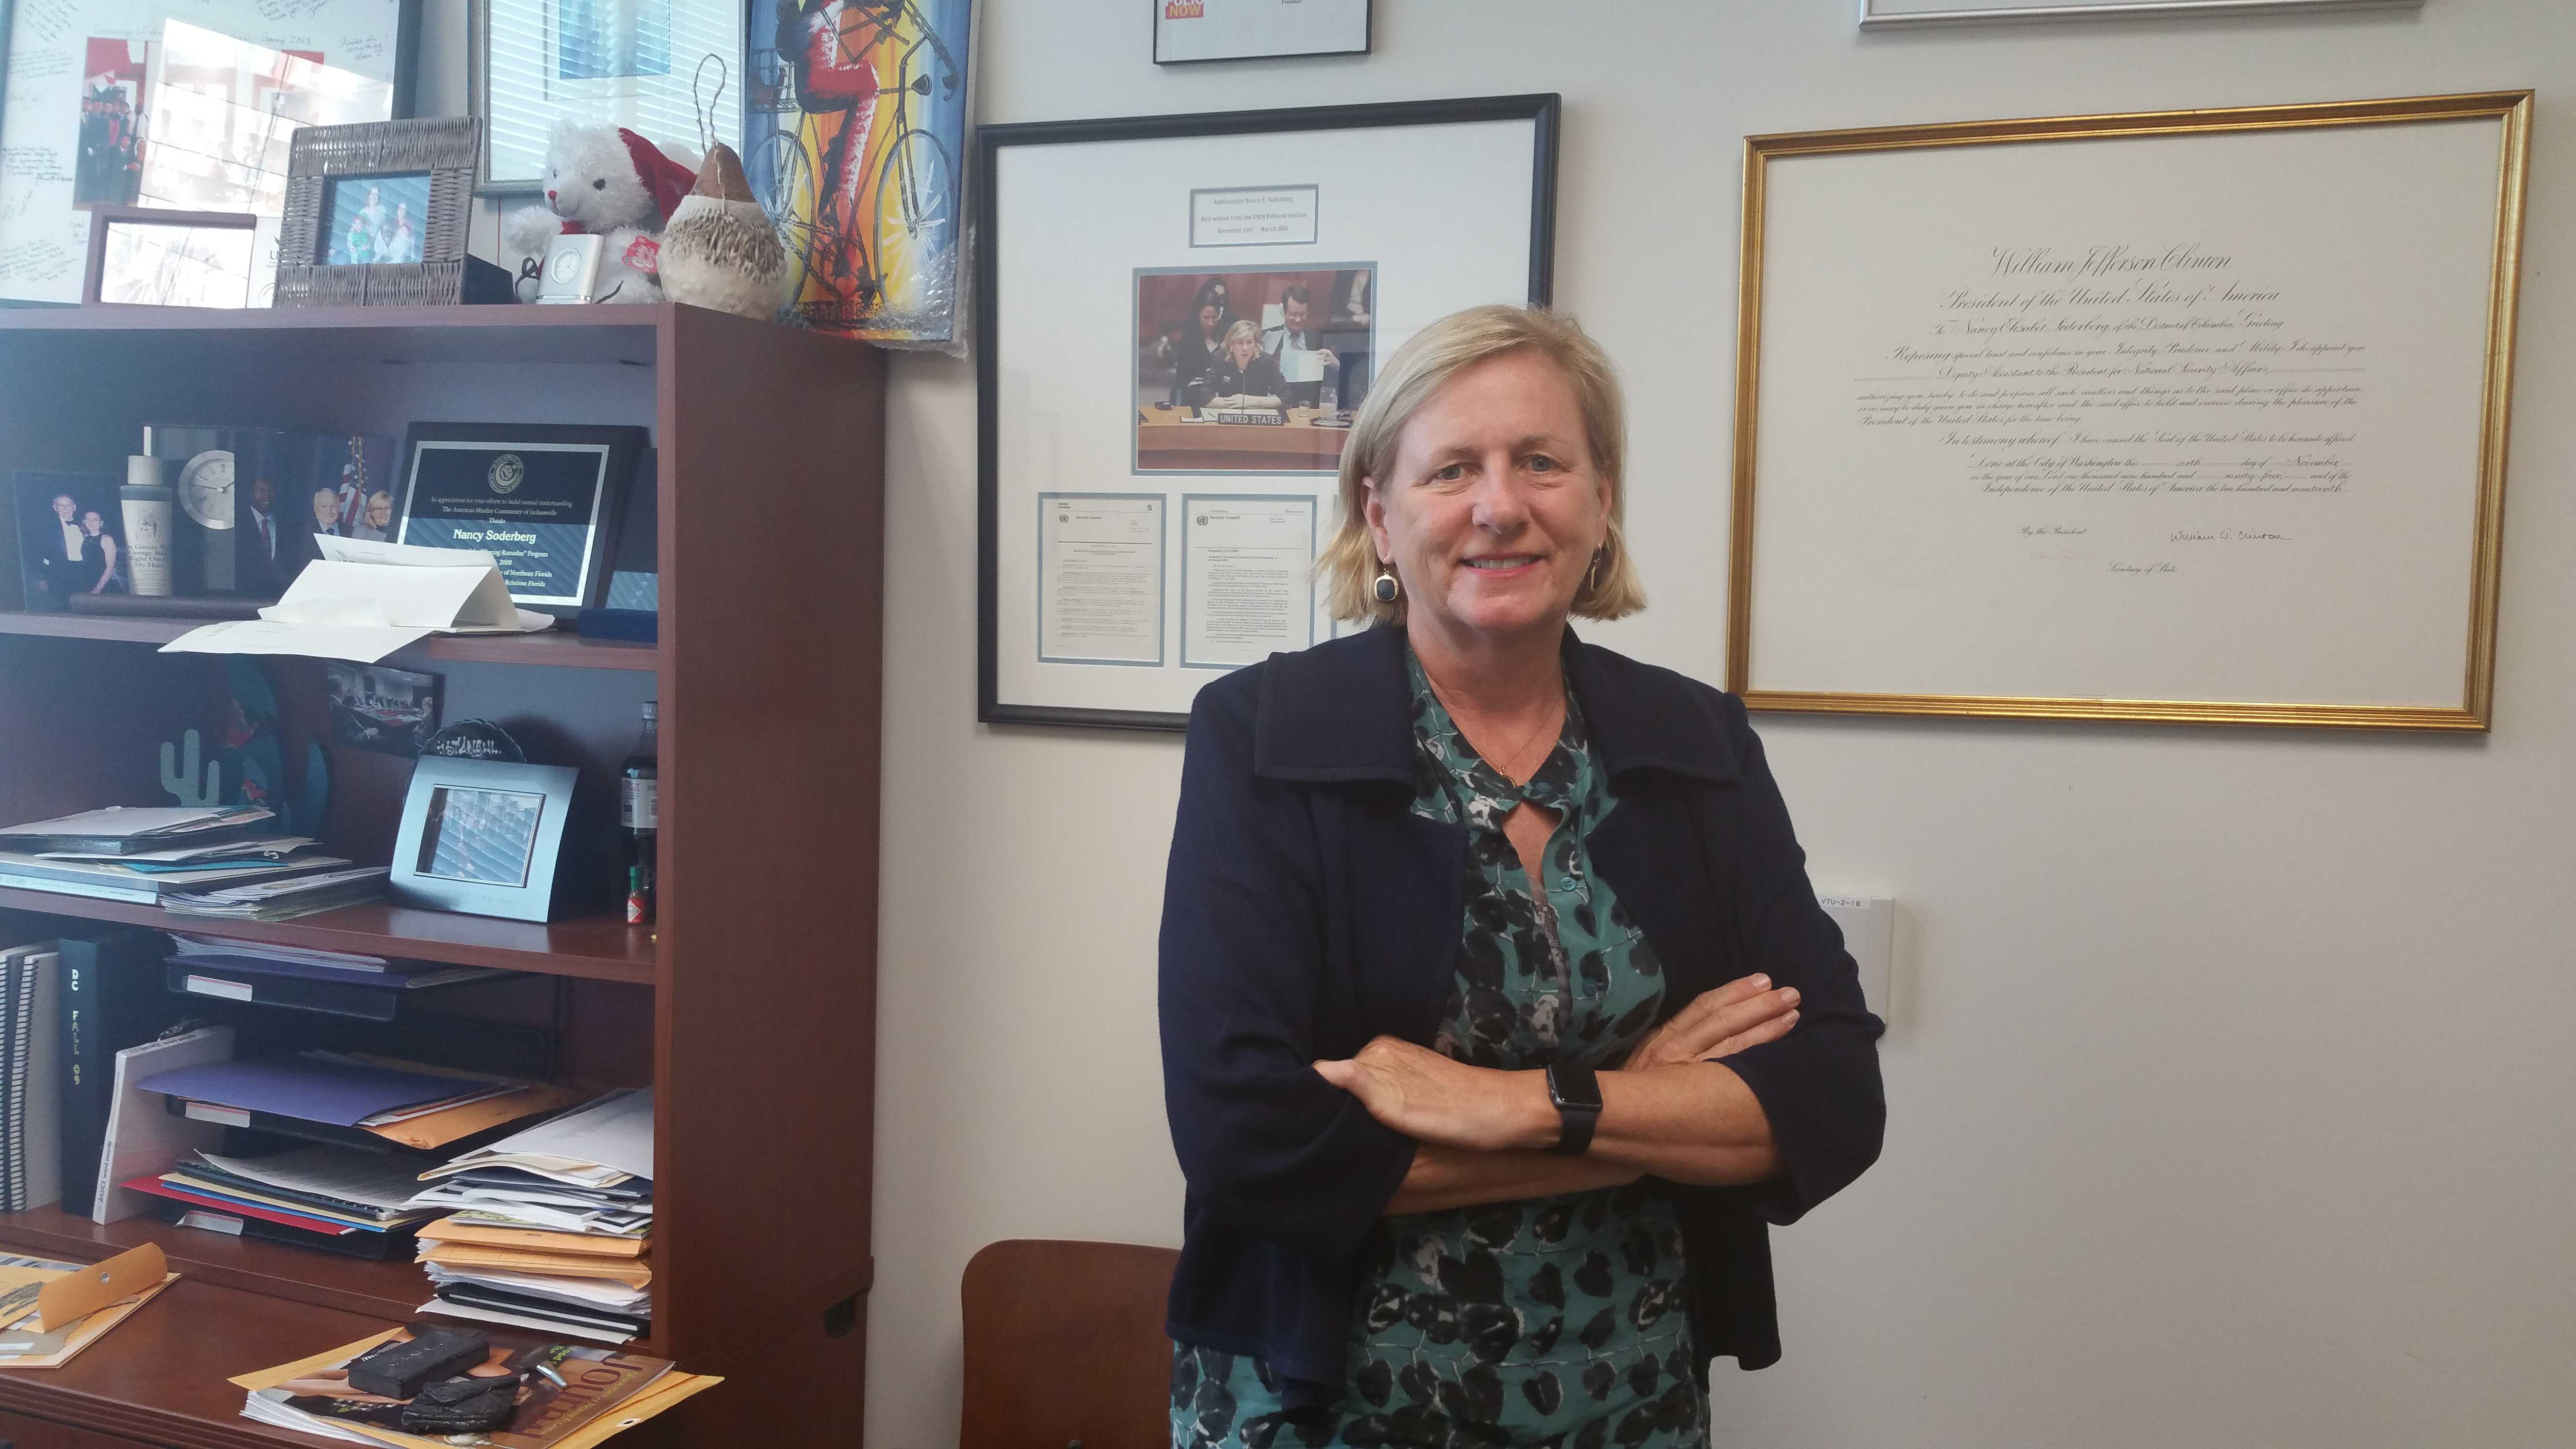 Professor Spotlight: Nancy Soderberg